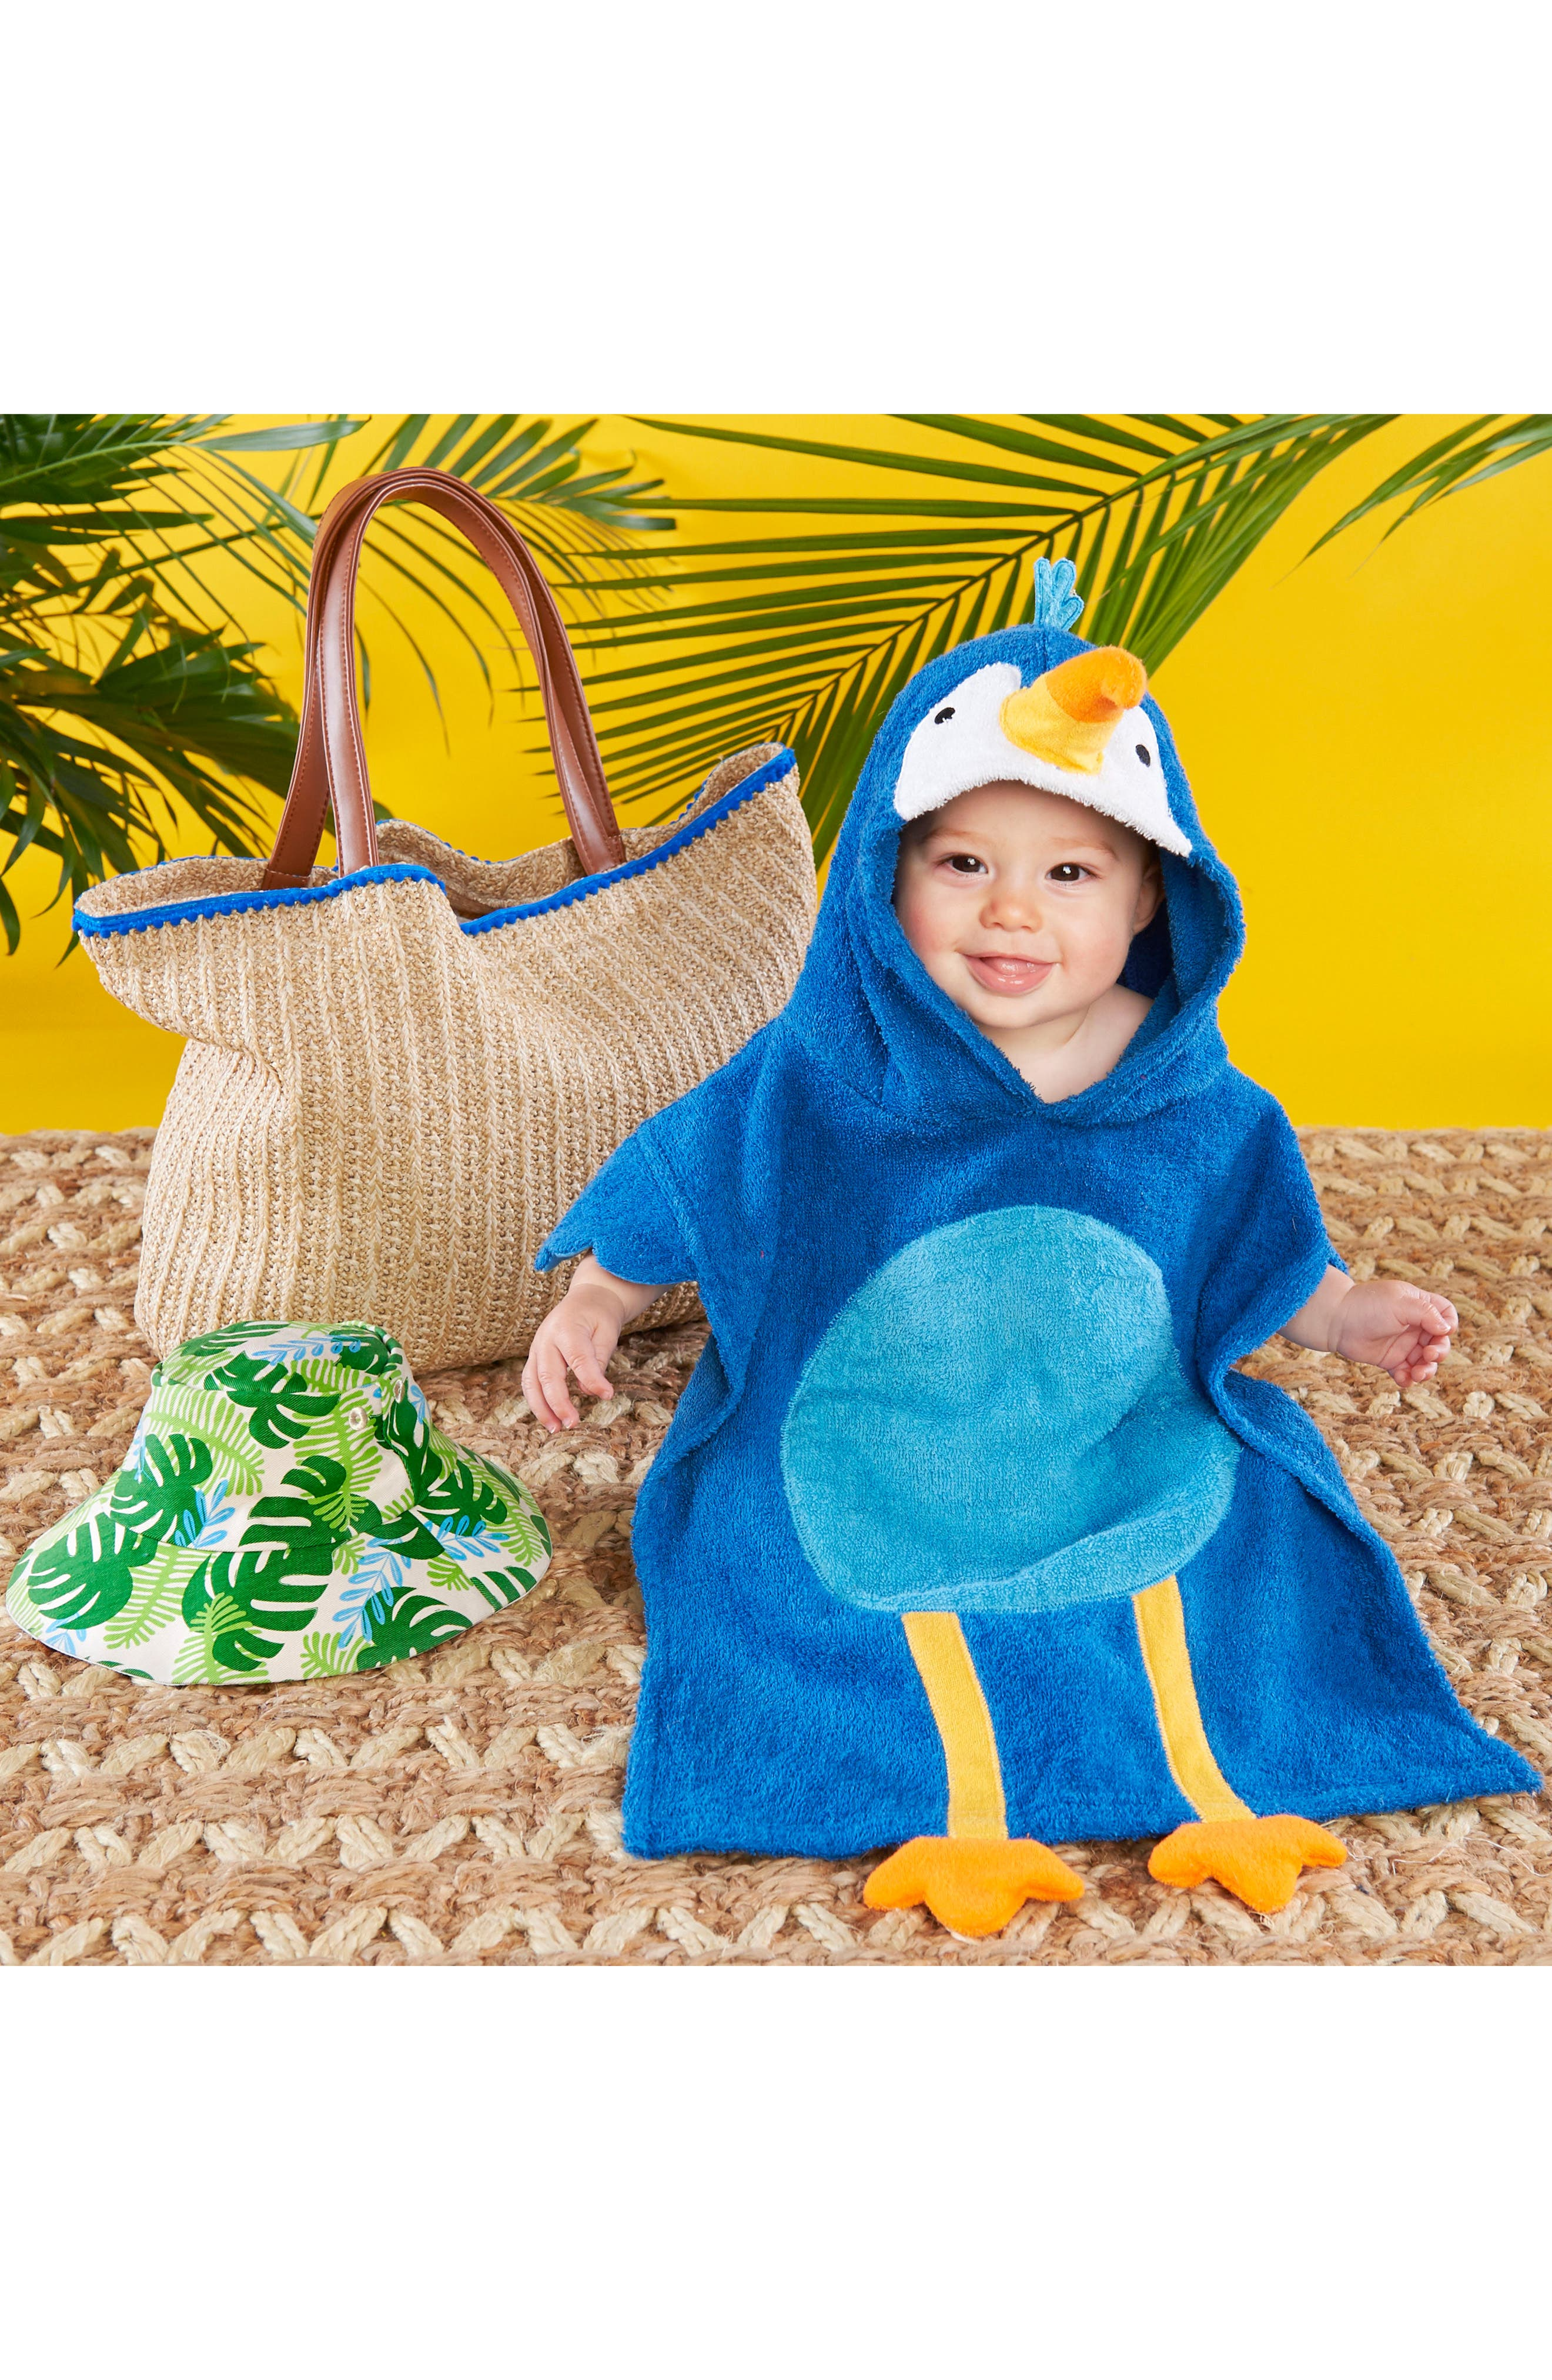 Tropical Hooded Towel, Swimsuit, Sun Hat & Tote Set,                             Alternate thumbnail 2, color,                             BLUE/ GREY/ WHITE/ BROWN